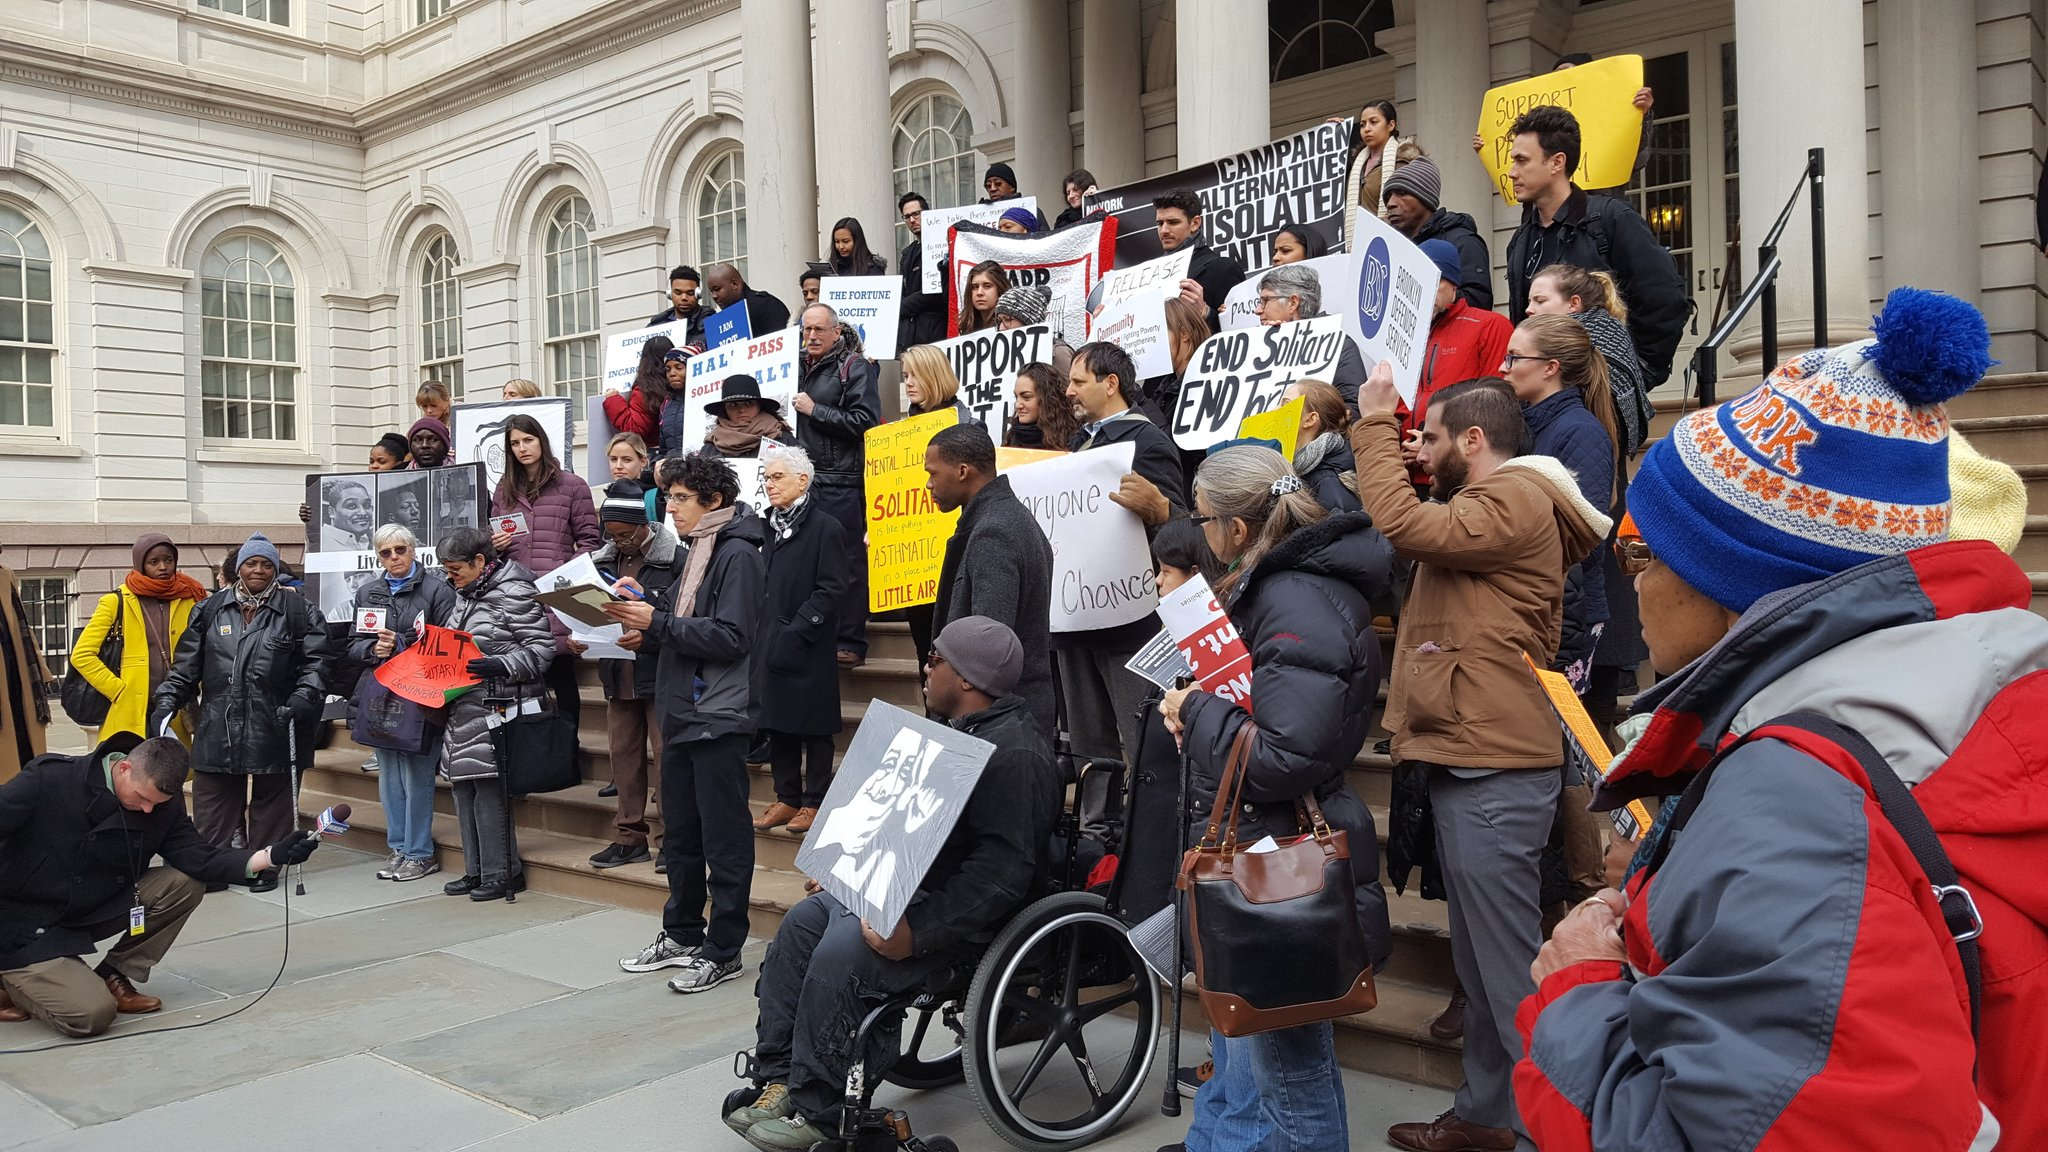 Over 45 groups come together to launch a platform to re-imagine NYS criminal injustice system now.  @NYGovCuomo  #ChallengeIncarcerationNY https://t.co/7A7lIR7uJk